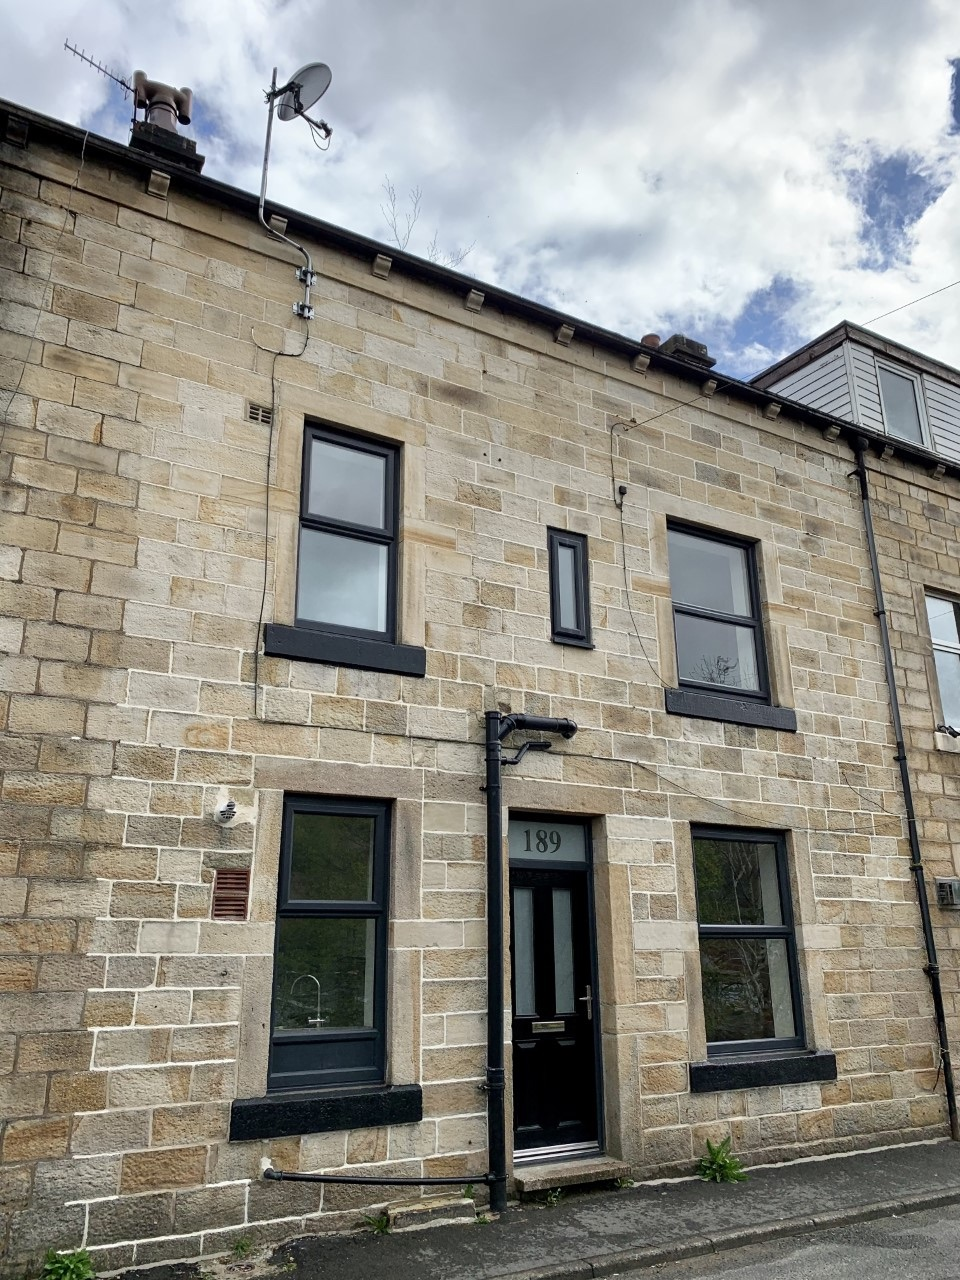 3 bedroom mid terraced house For Sale in Calderdale - Photograph 15.